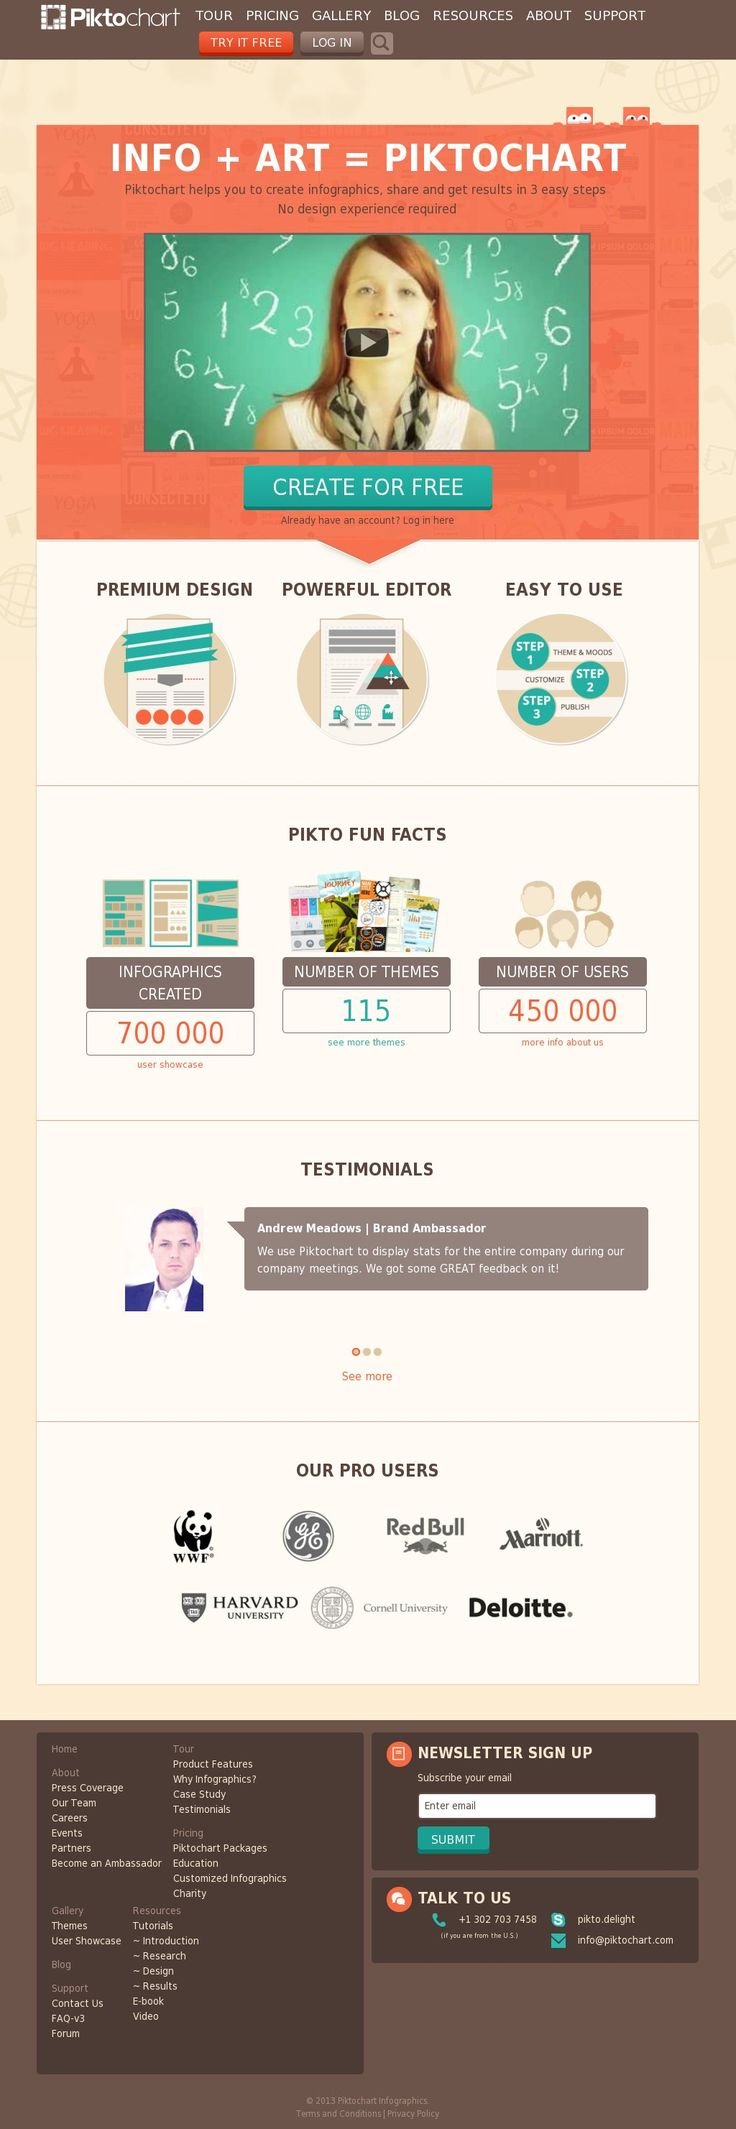 17 Best images about Infograph on Pinterest | Alzheimers ...